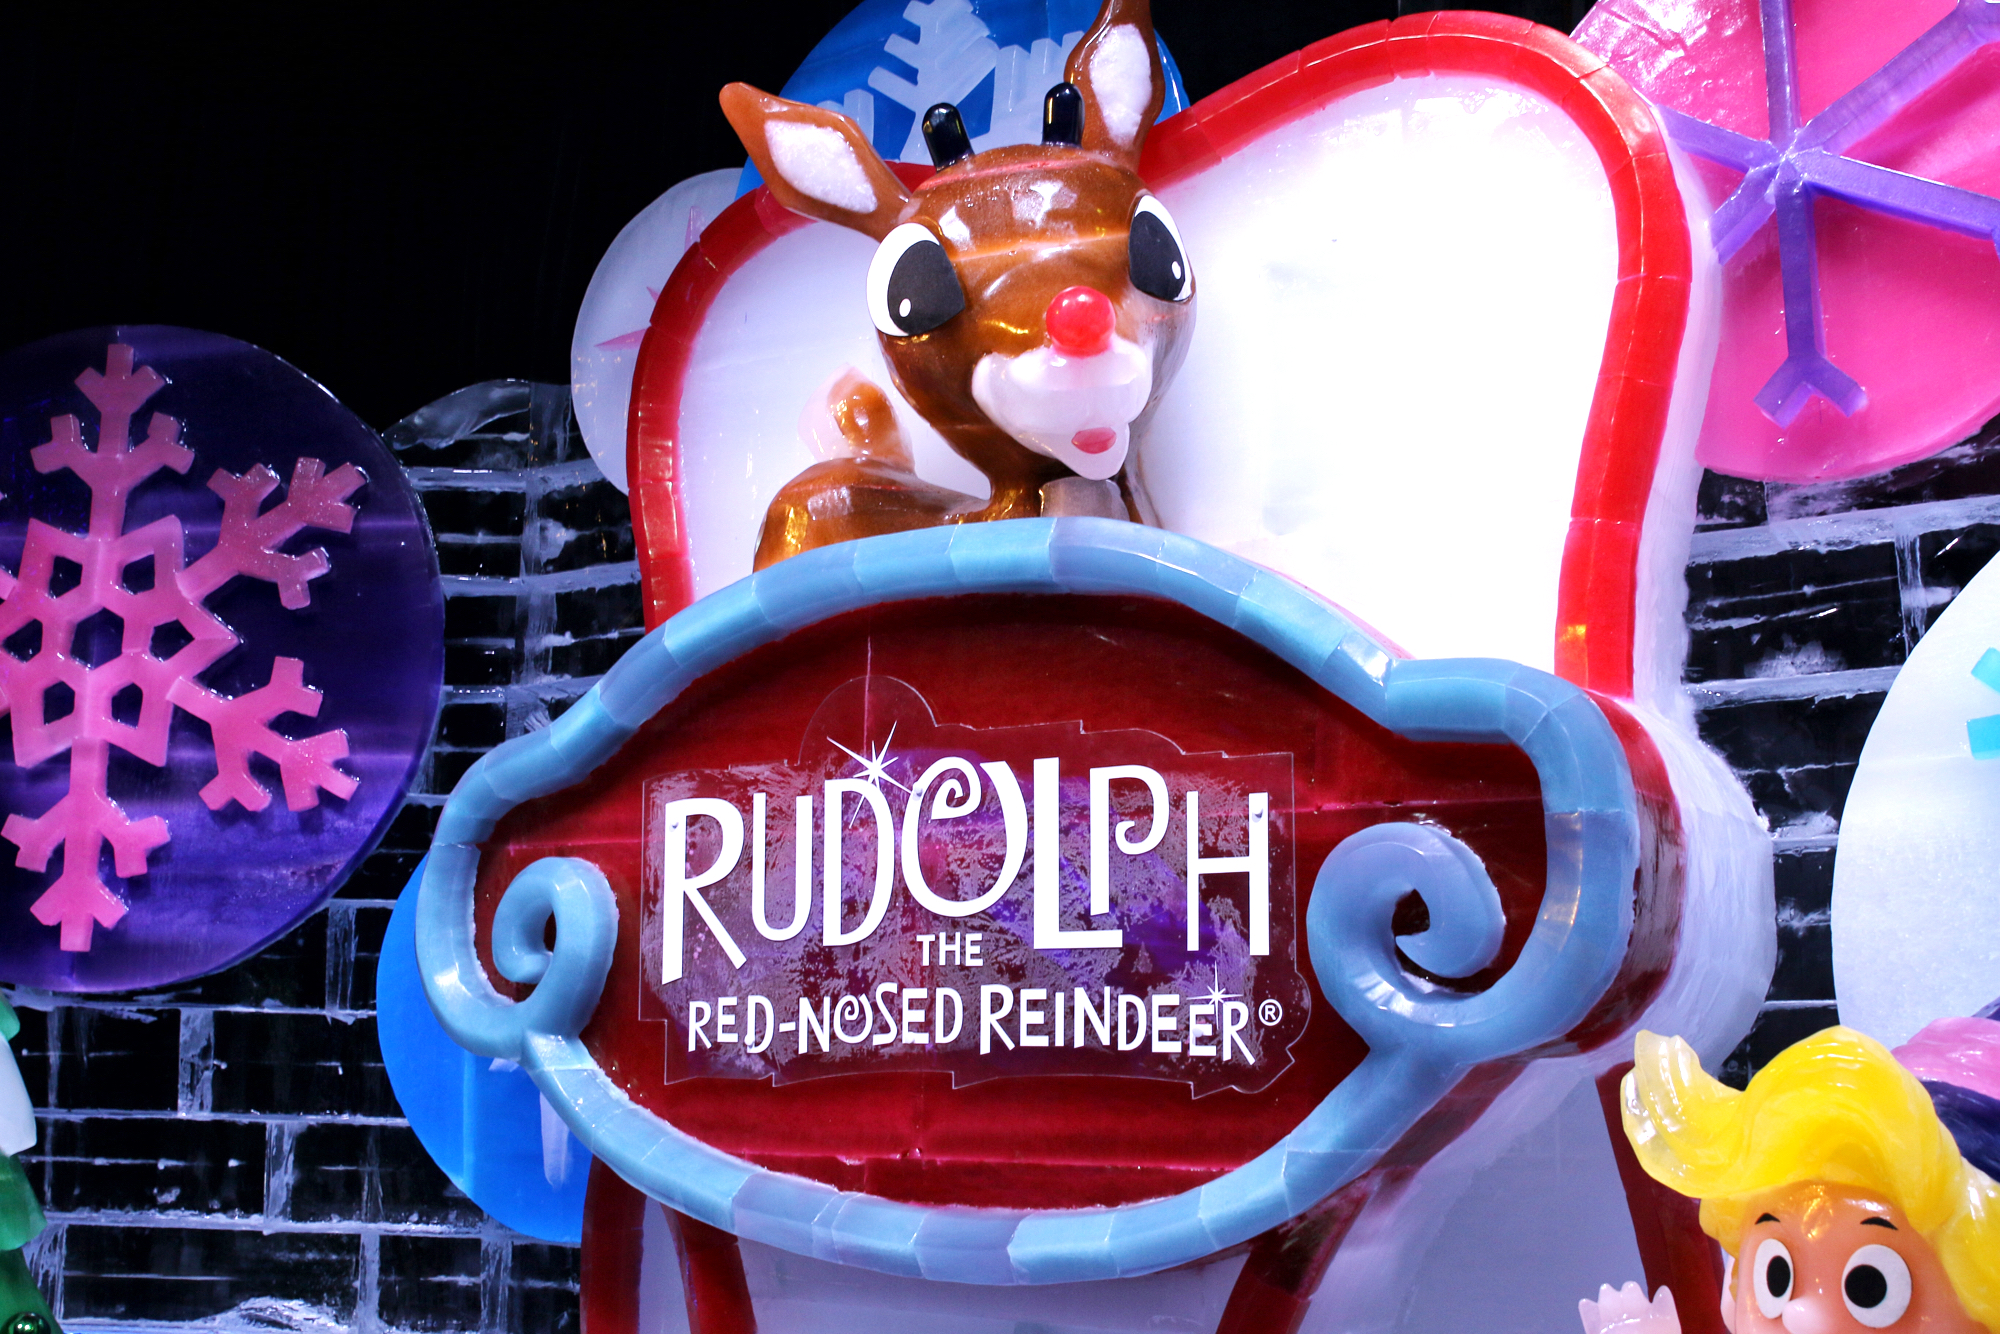 Rudolph the Red-Nosed Reindeer Ice exhibit